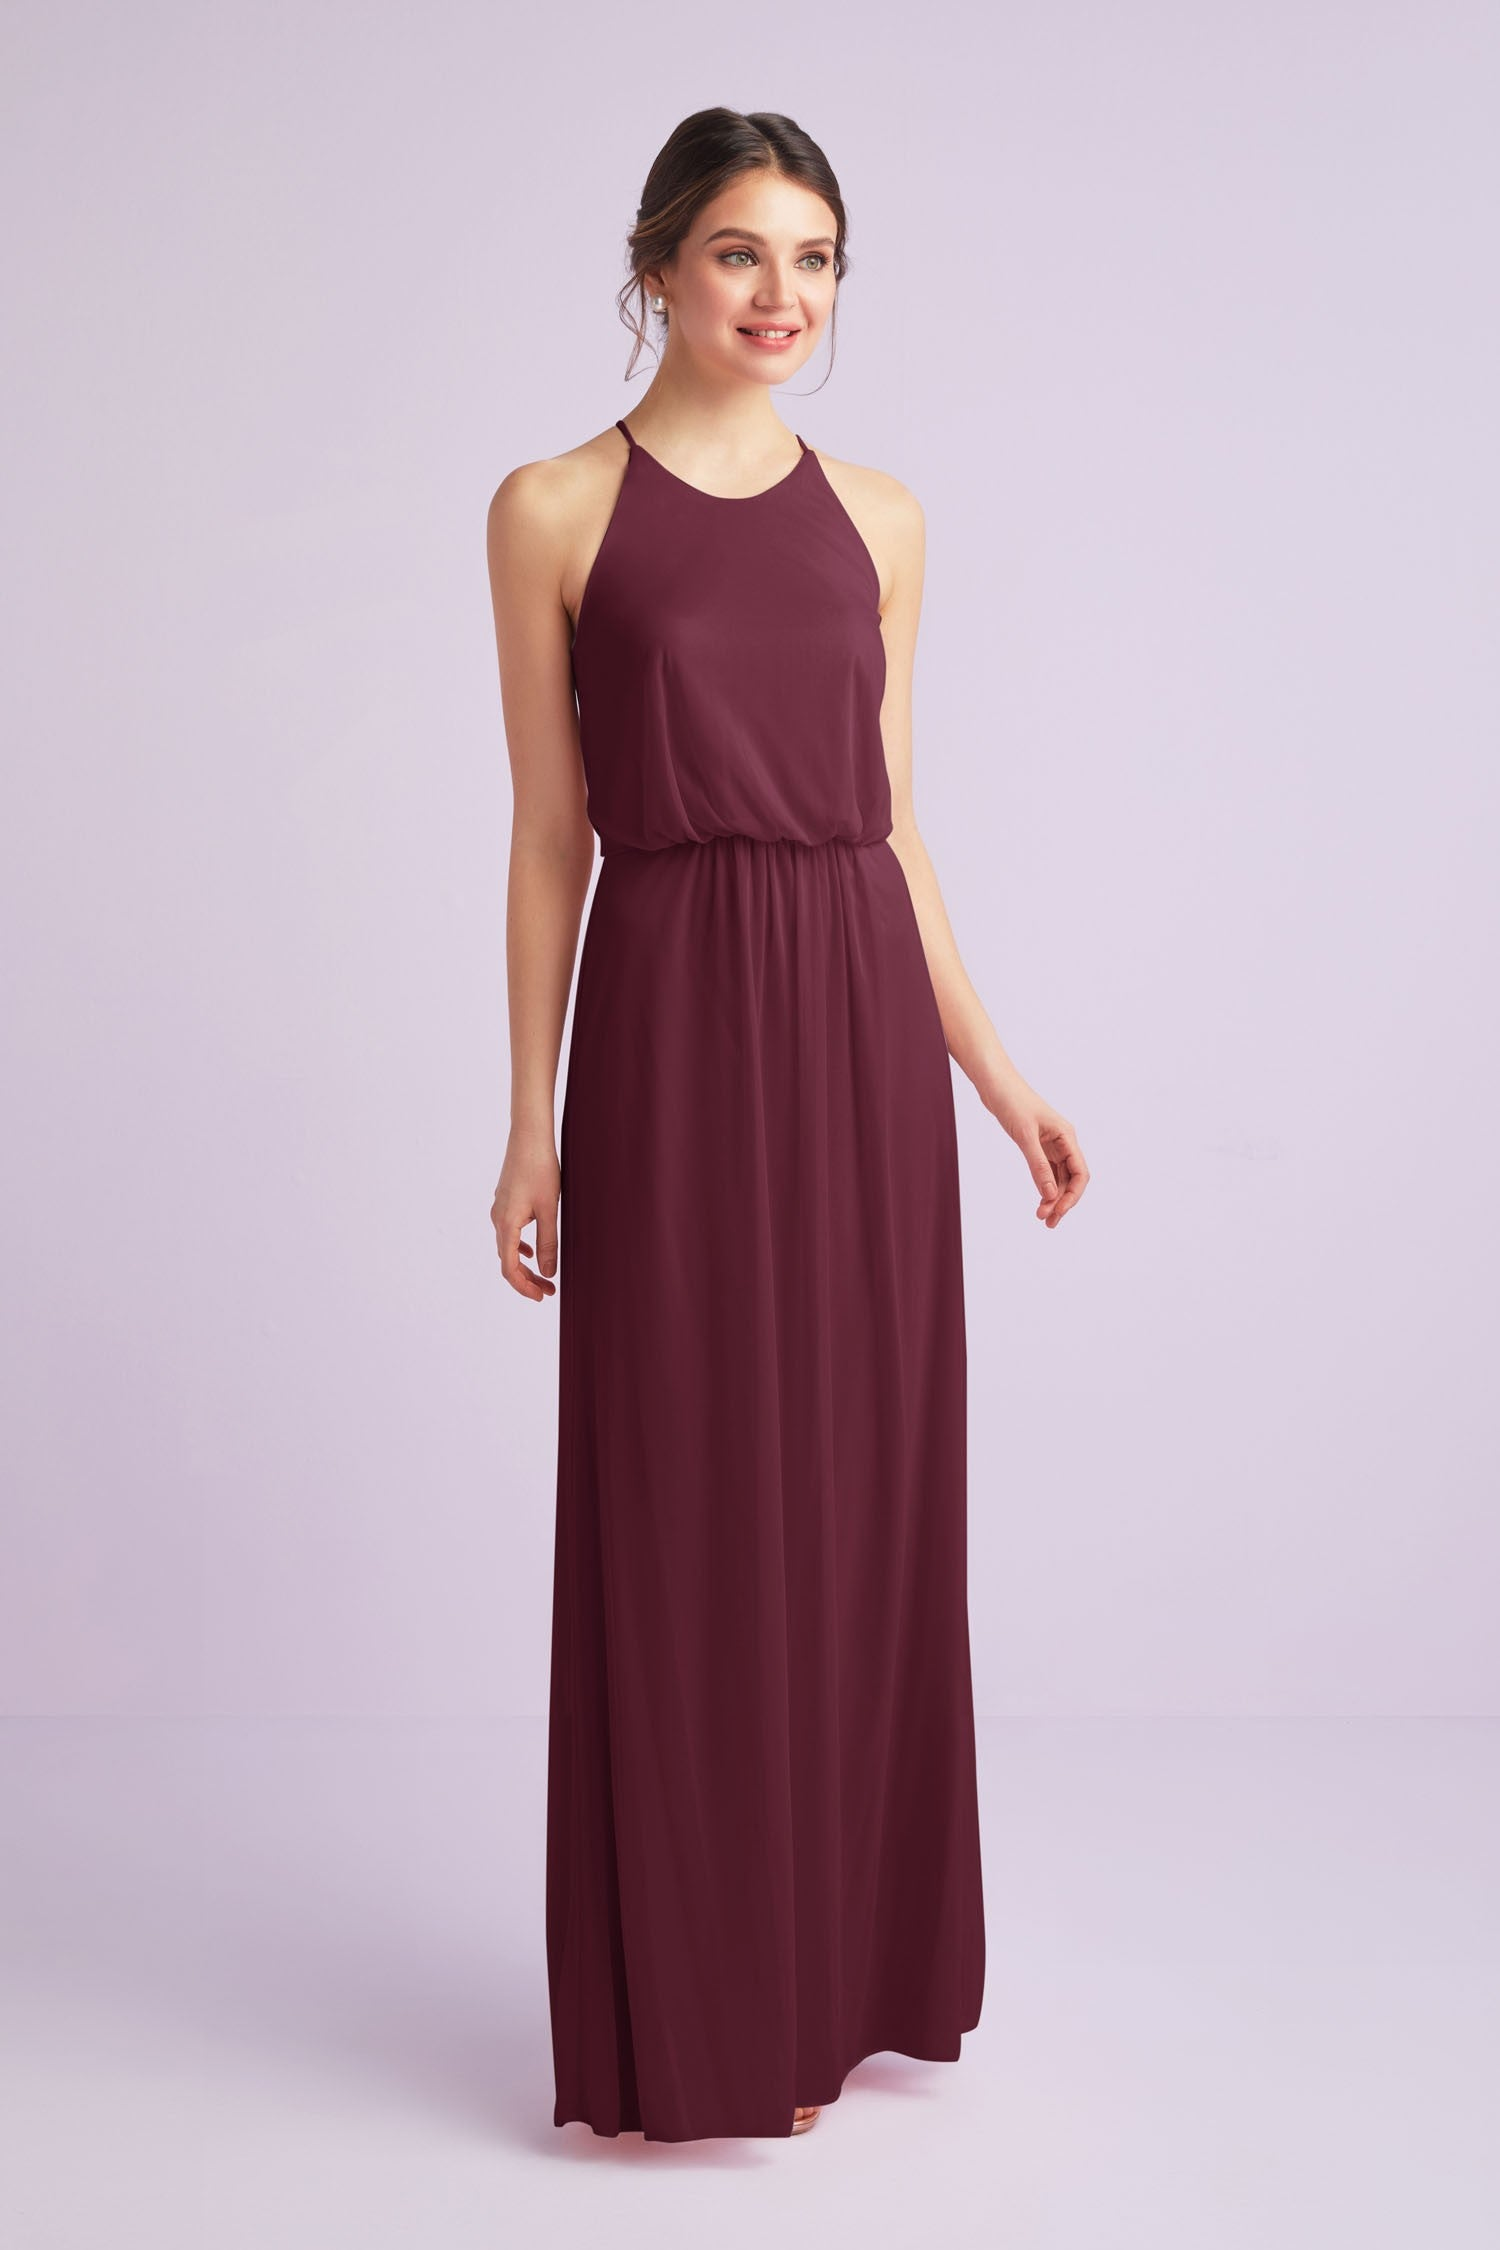 Blouson High-Neck Mesh Bridesmaid Dress